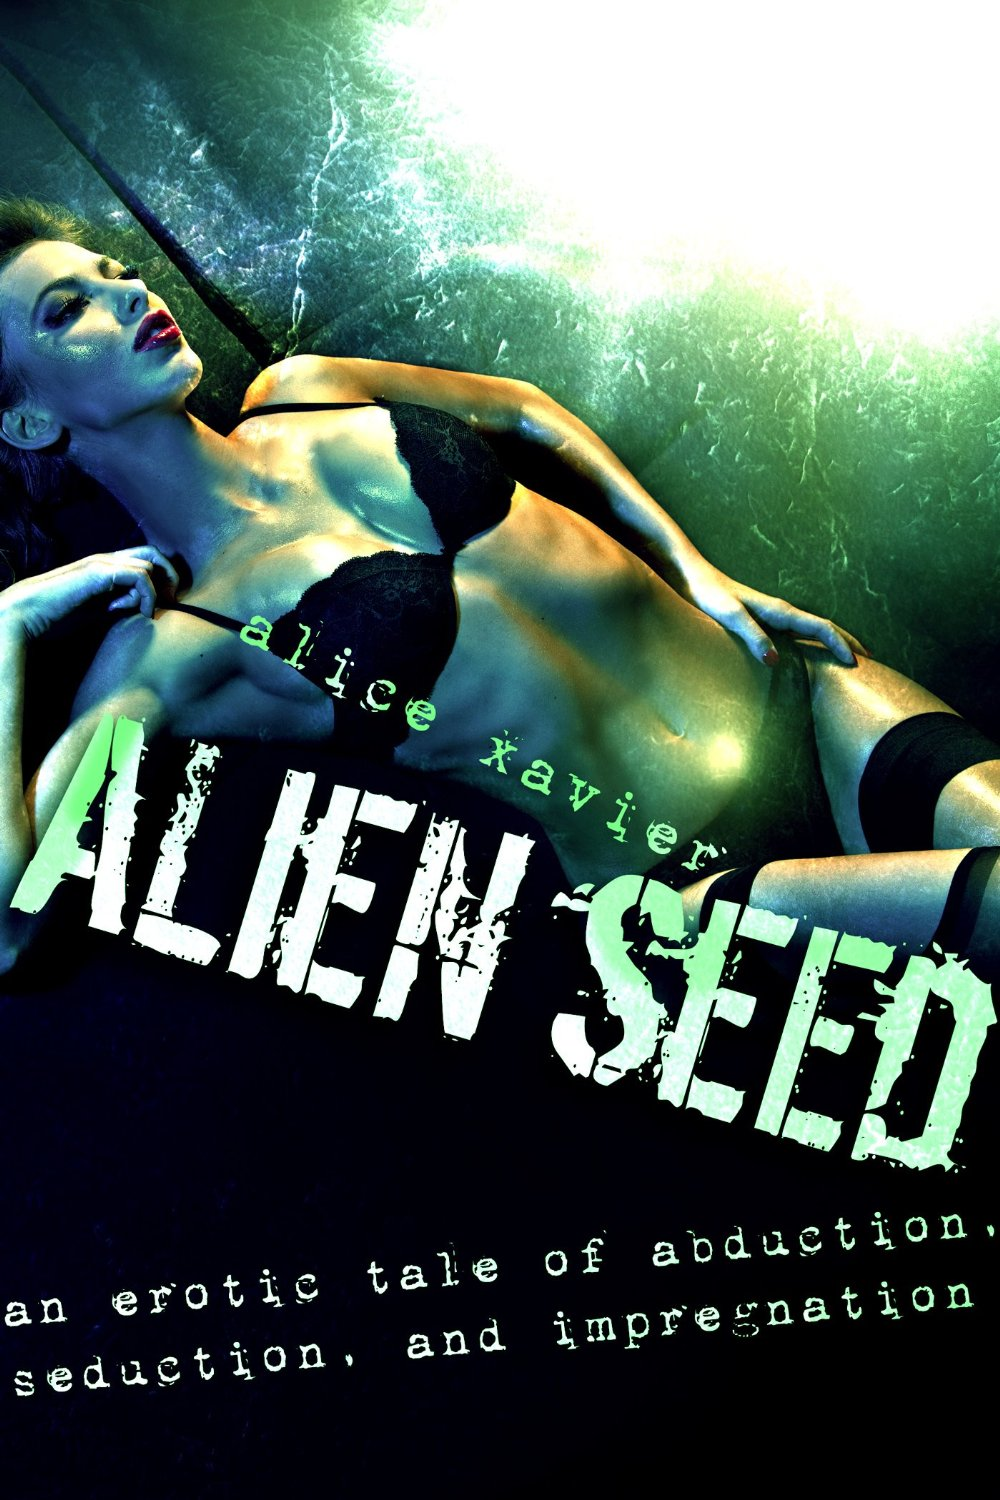 Aliens dominate this erotic thriller by Alice Xavier about an abductee that might enjoy probing too much.